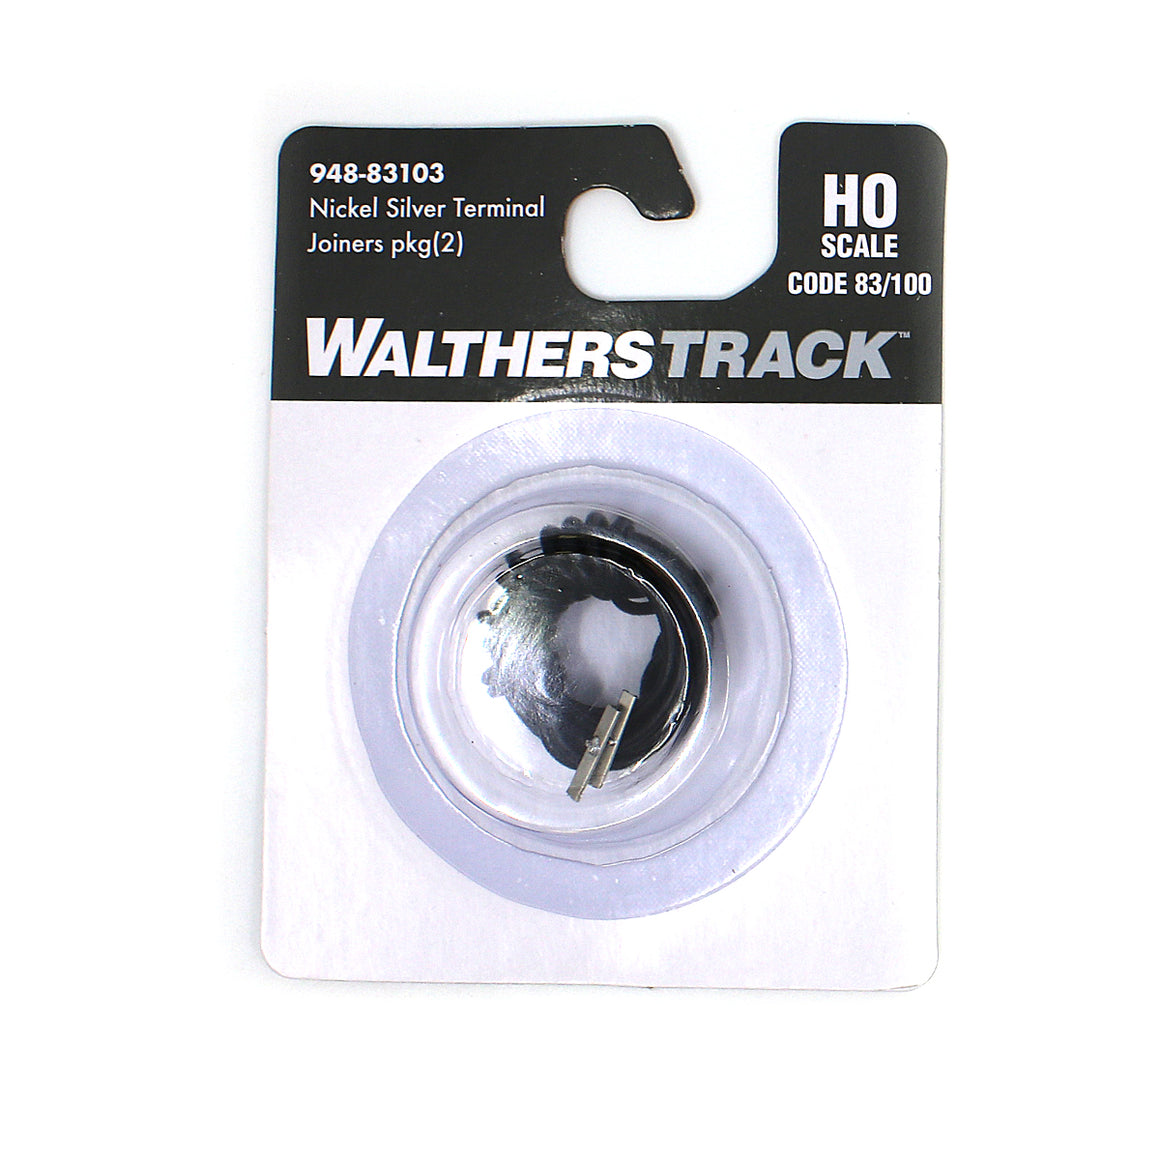 HO Scale: Code 83/100 Nickel Silver Terminal Rail Joiners with 22-Gauge Wire